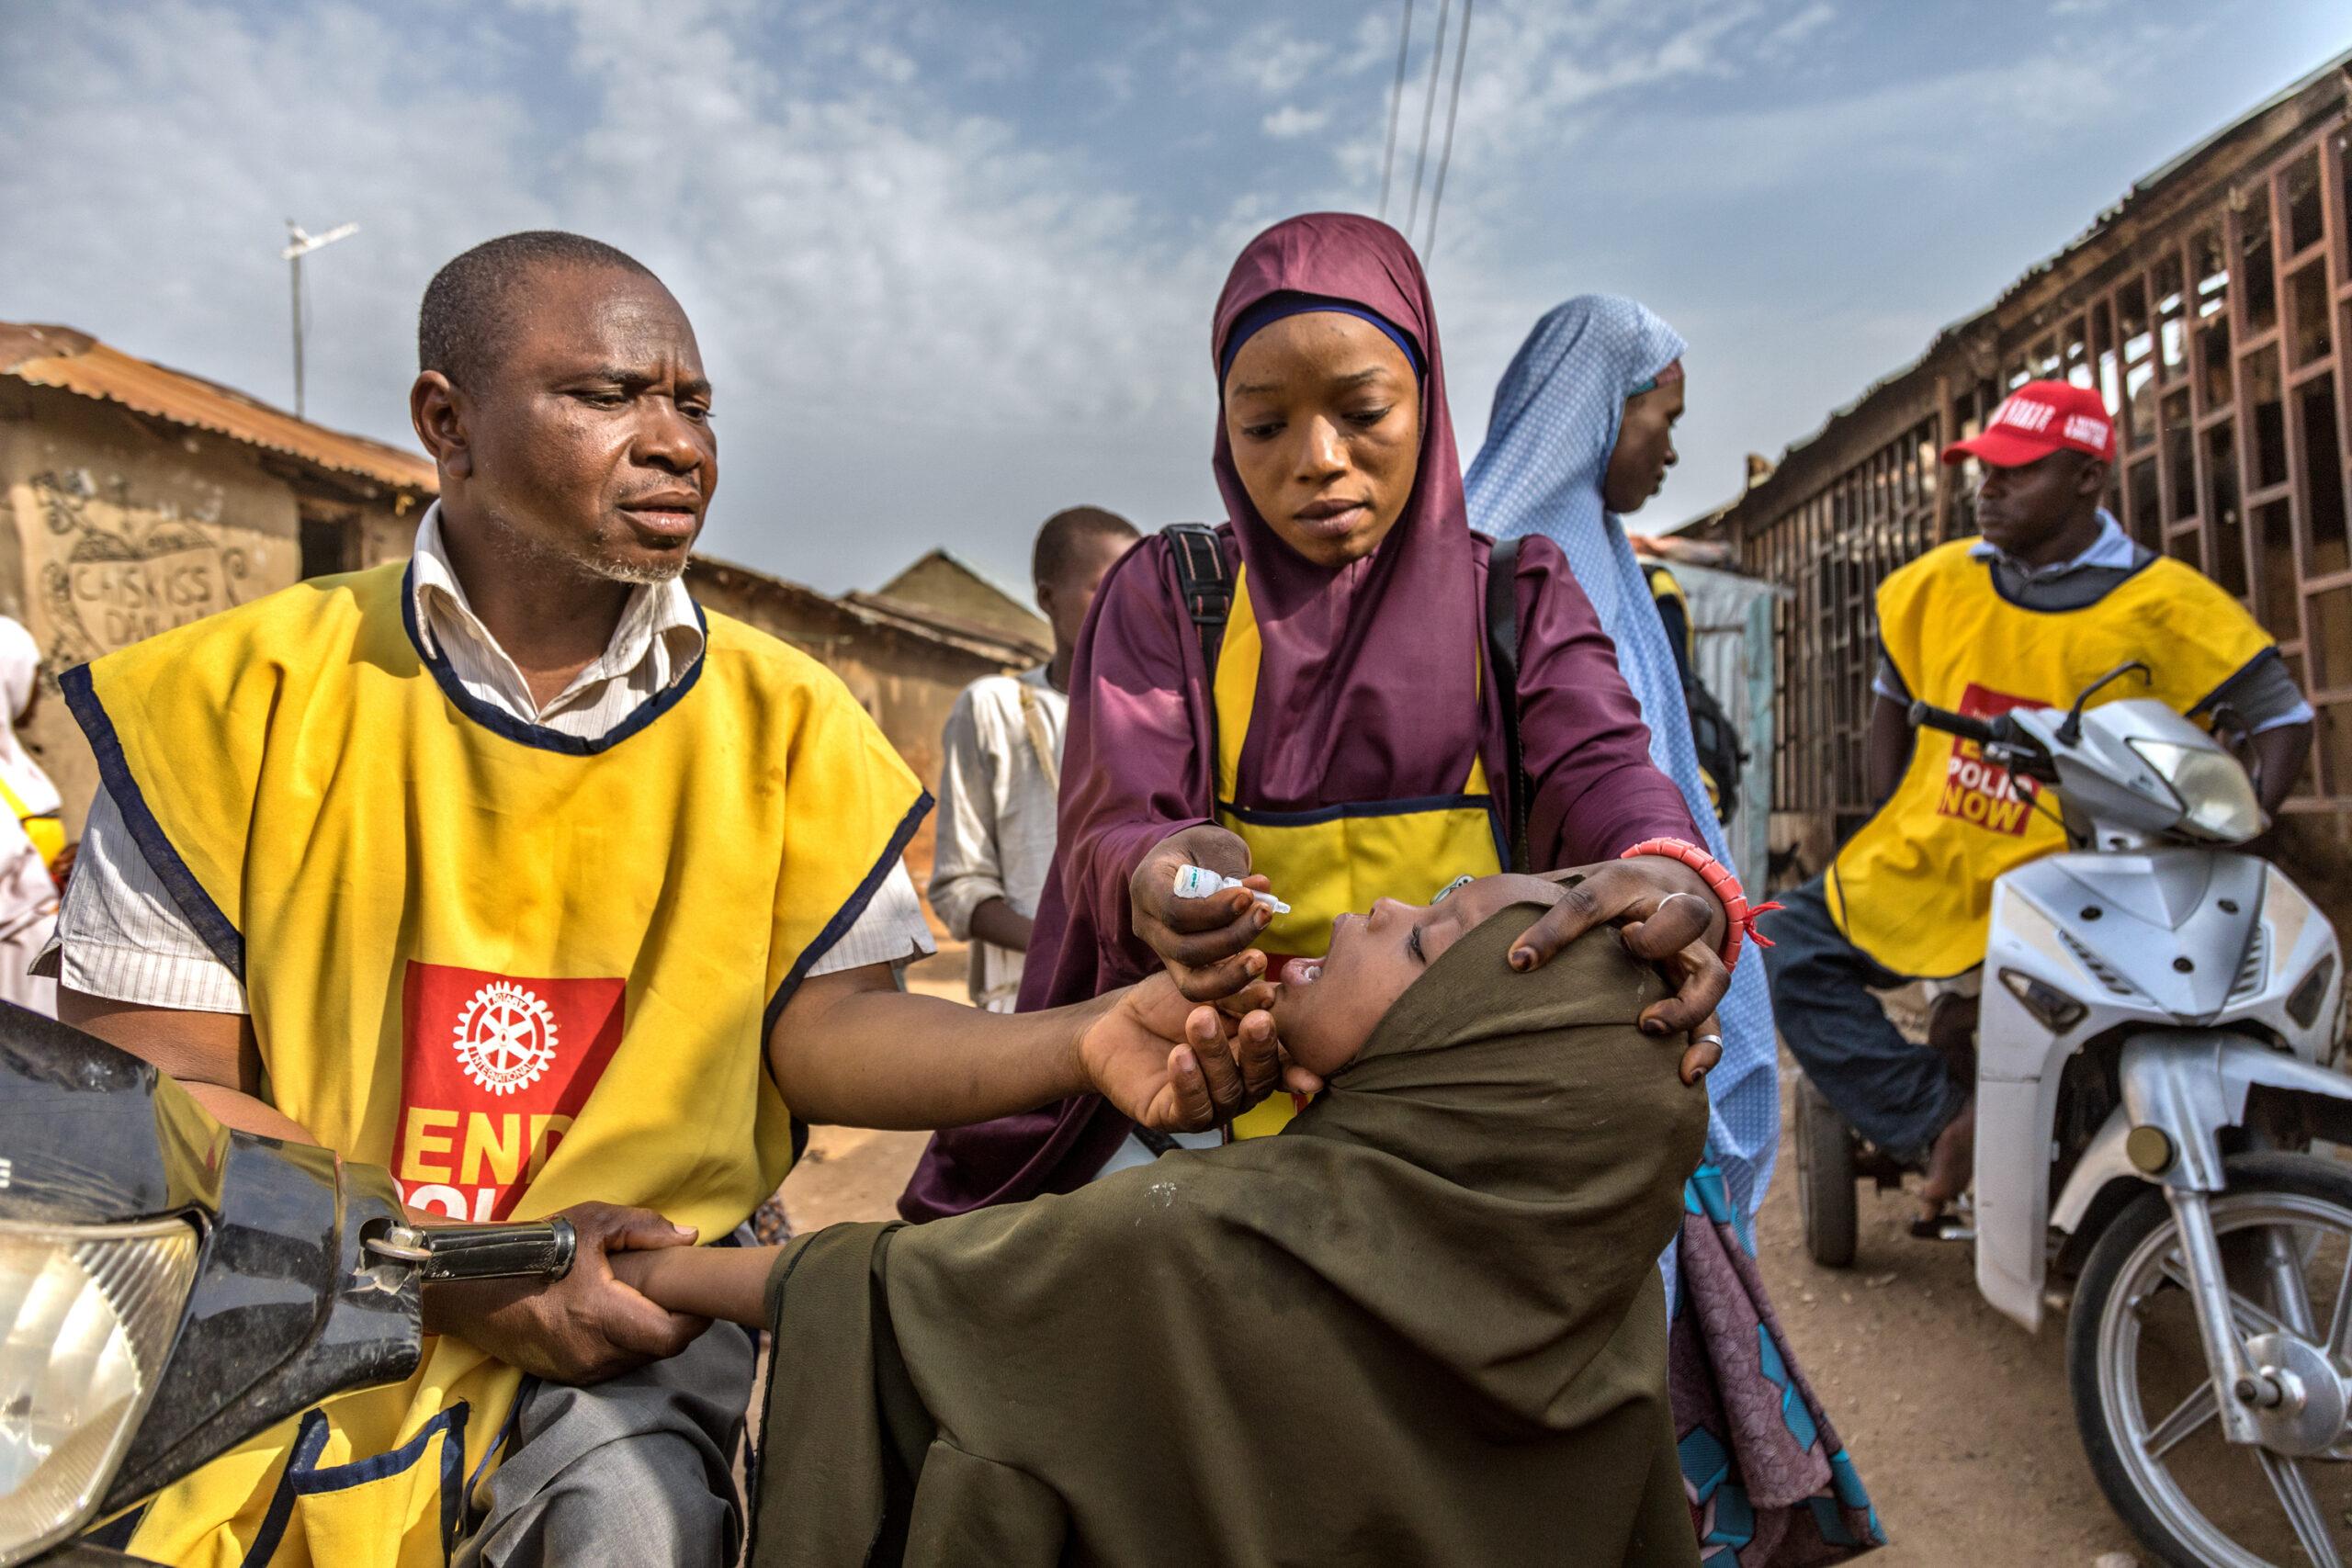 Health workers and volunteers participate in a door-to-door polio immunization campaign in Kaduna, Nigeria. 13 April 2019. Rotary International is working closely with the government of Nigeria and its GPEI partners to intensify polio-eradication efforts there by addressing cultural barriers, fostering community education, and increasing surveillance in a mobile population